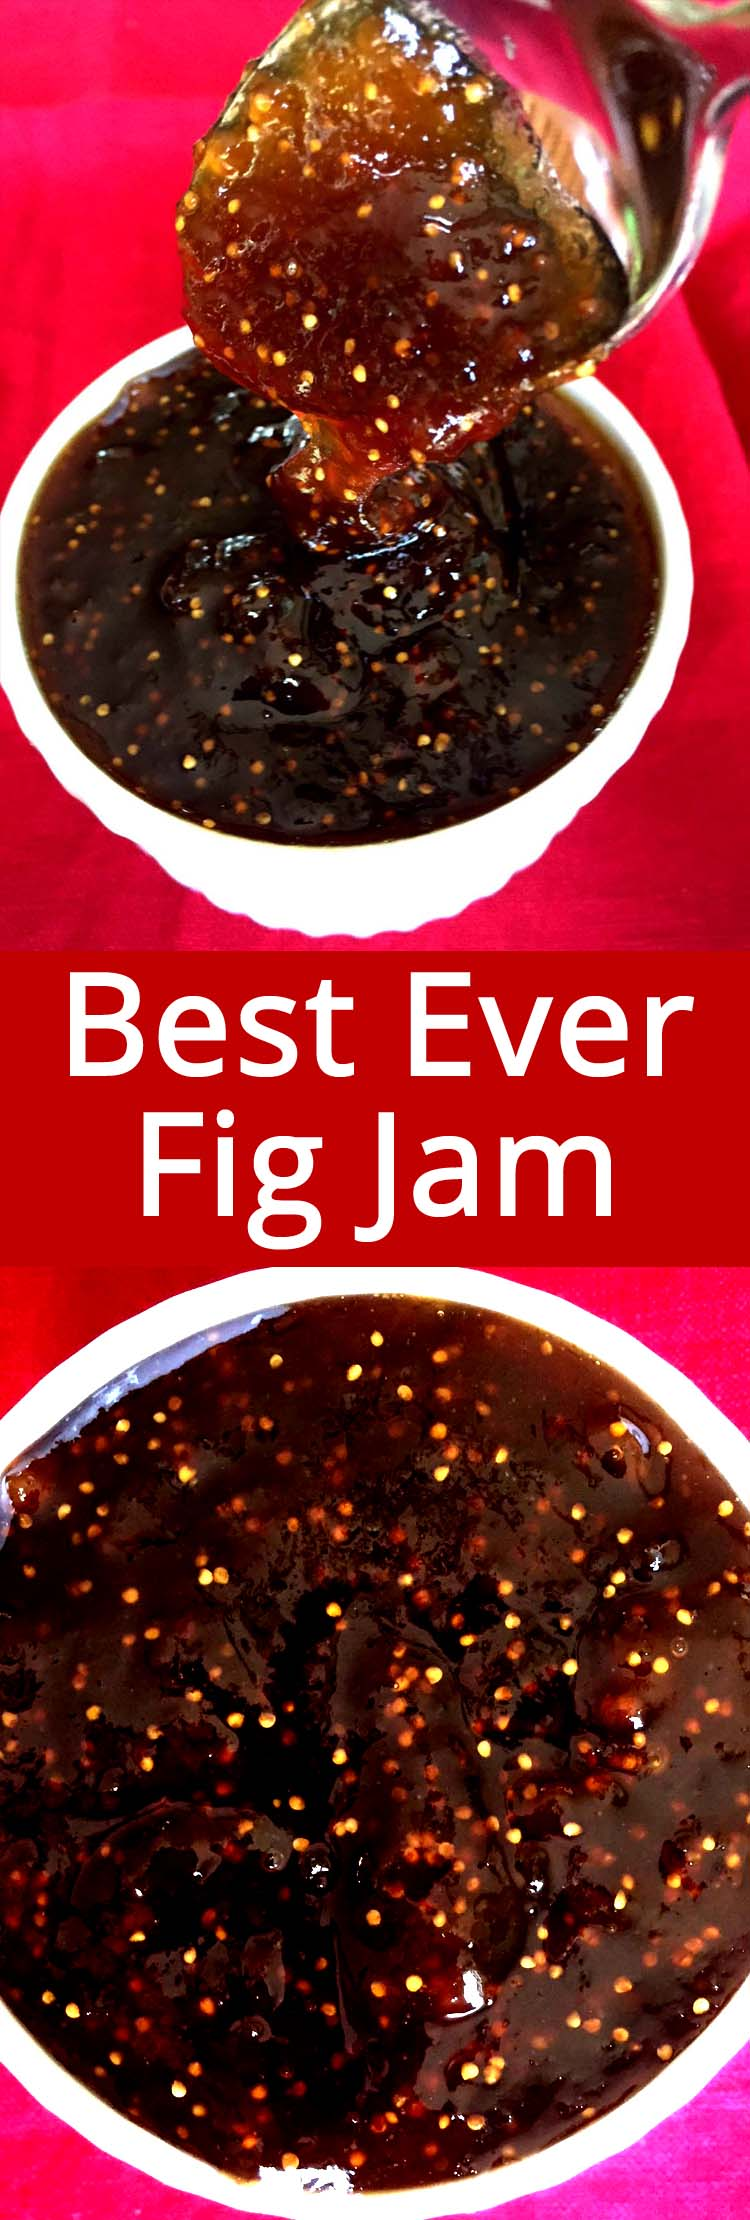 This homemade fig jam is amazing! Made with fresh figs, this is the best fig jam you'll ever have! Super easy to make, this fig jam is a star of any cheese platter!